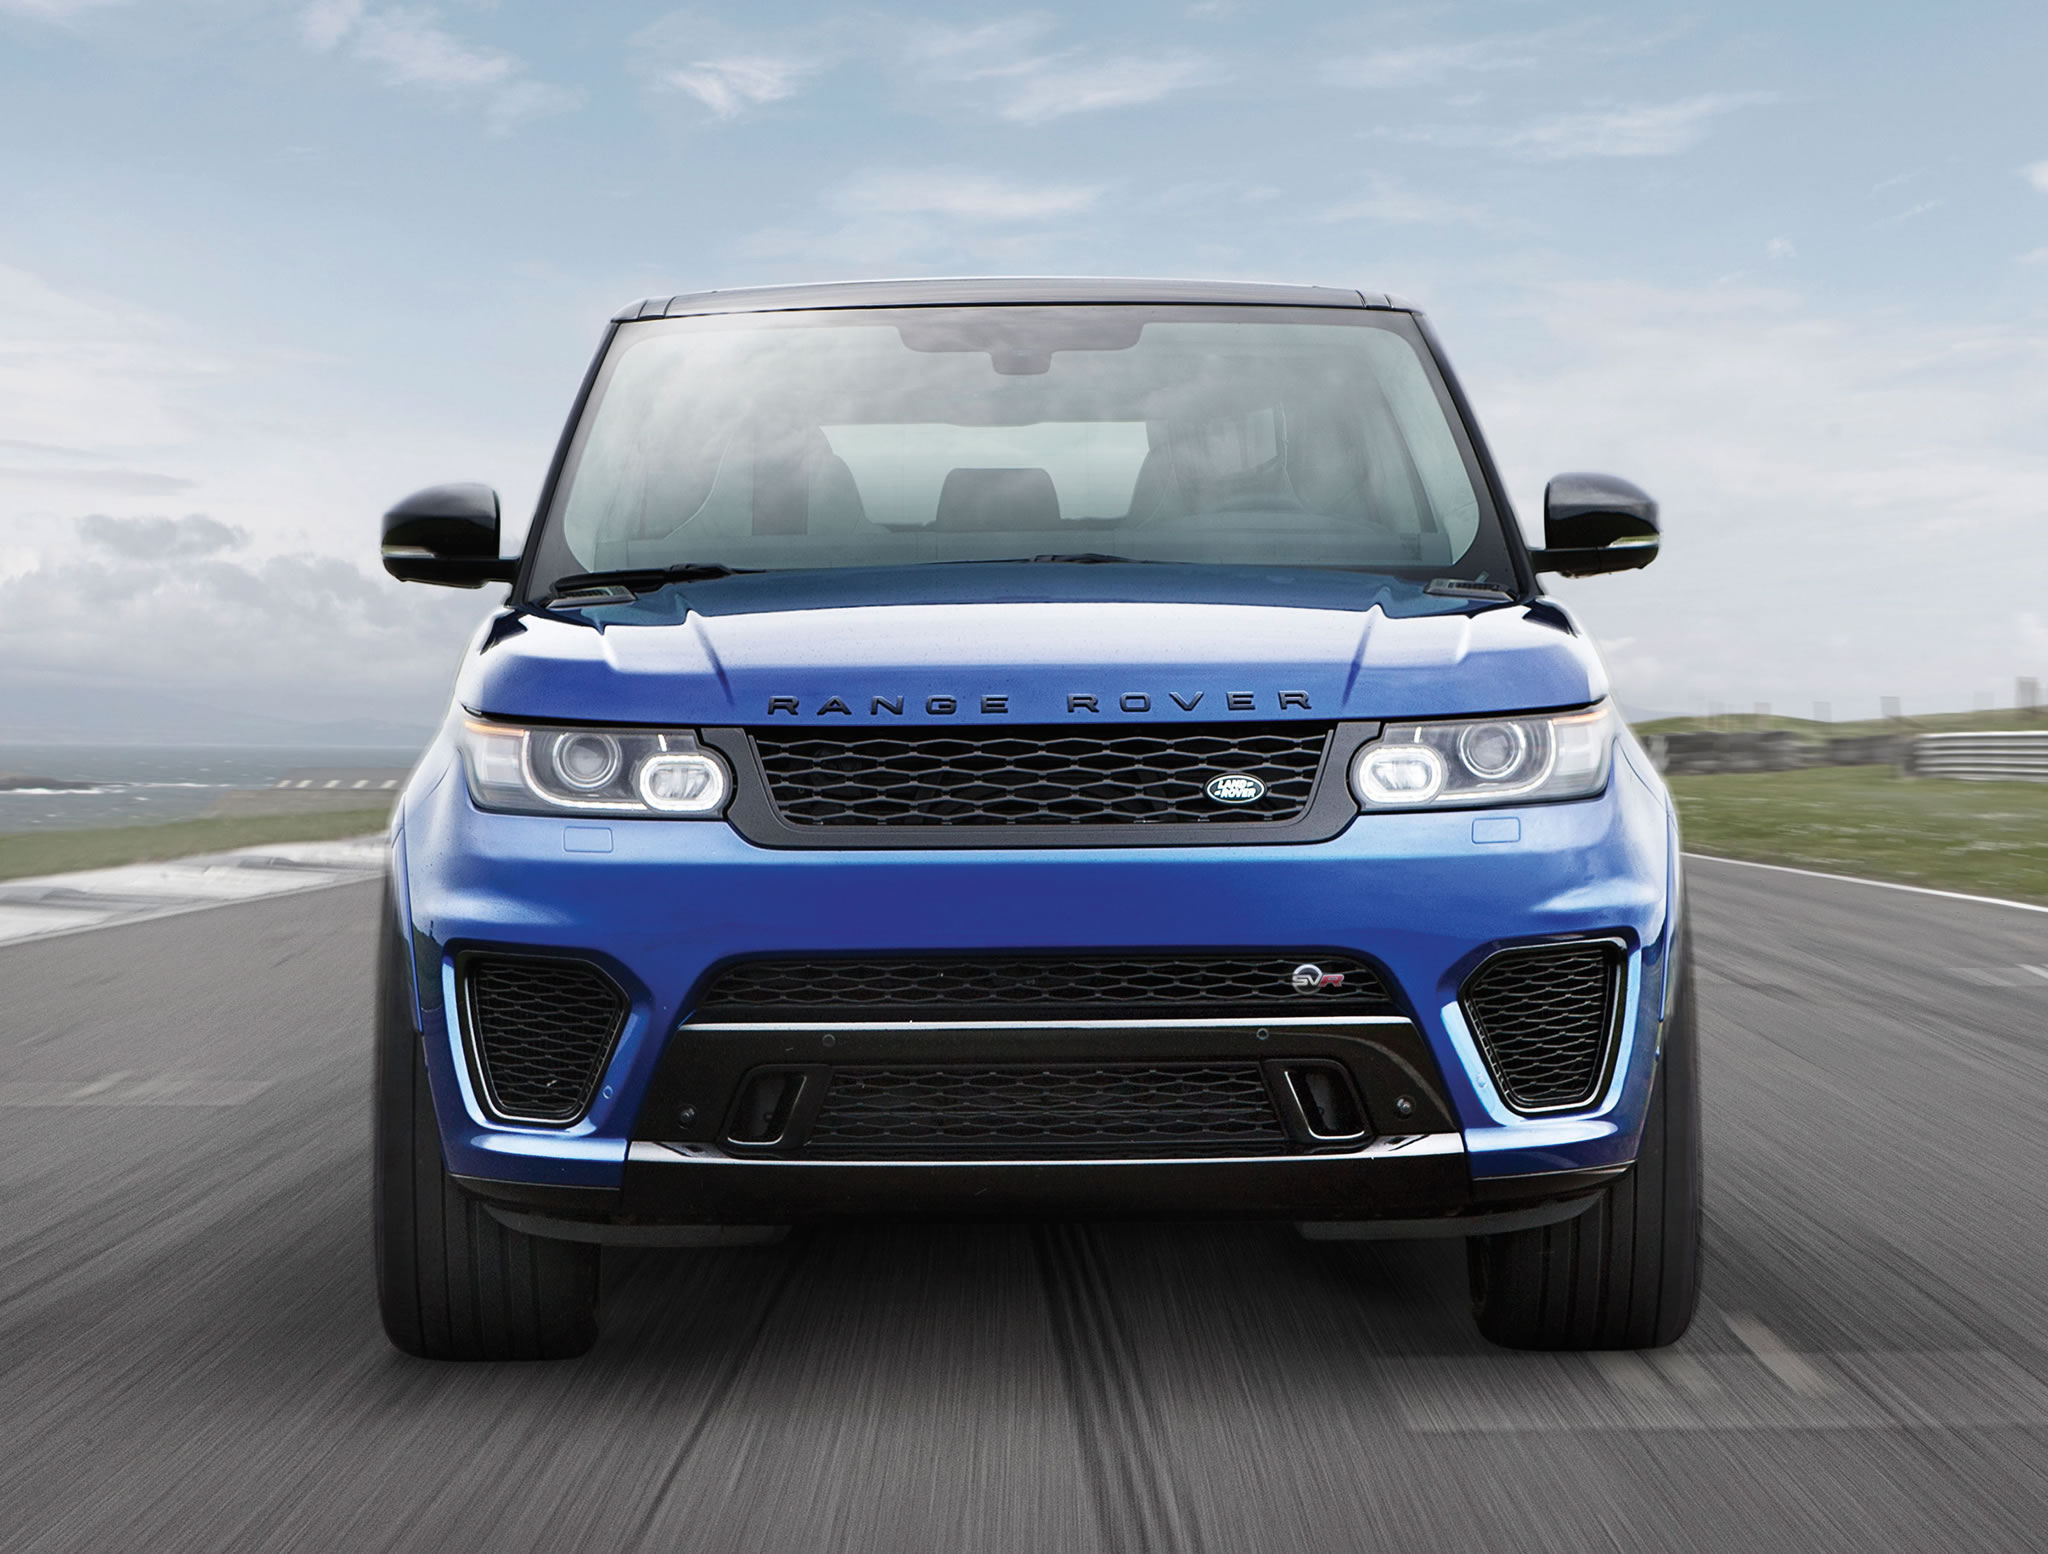 2015 Land Rover Range Rover Sport Svr Front Photo